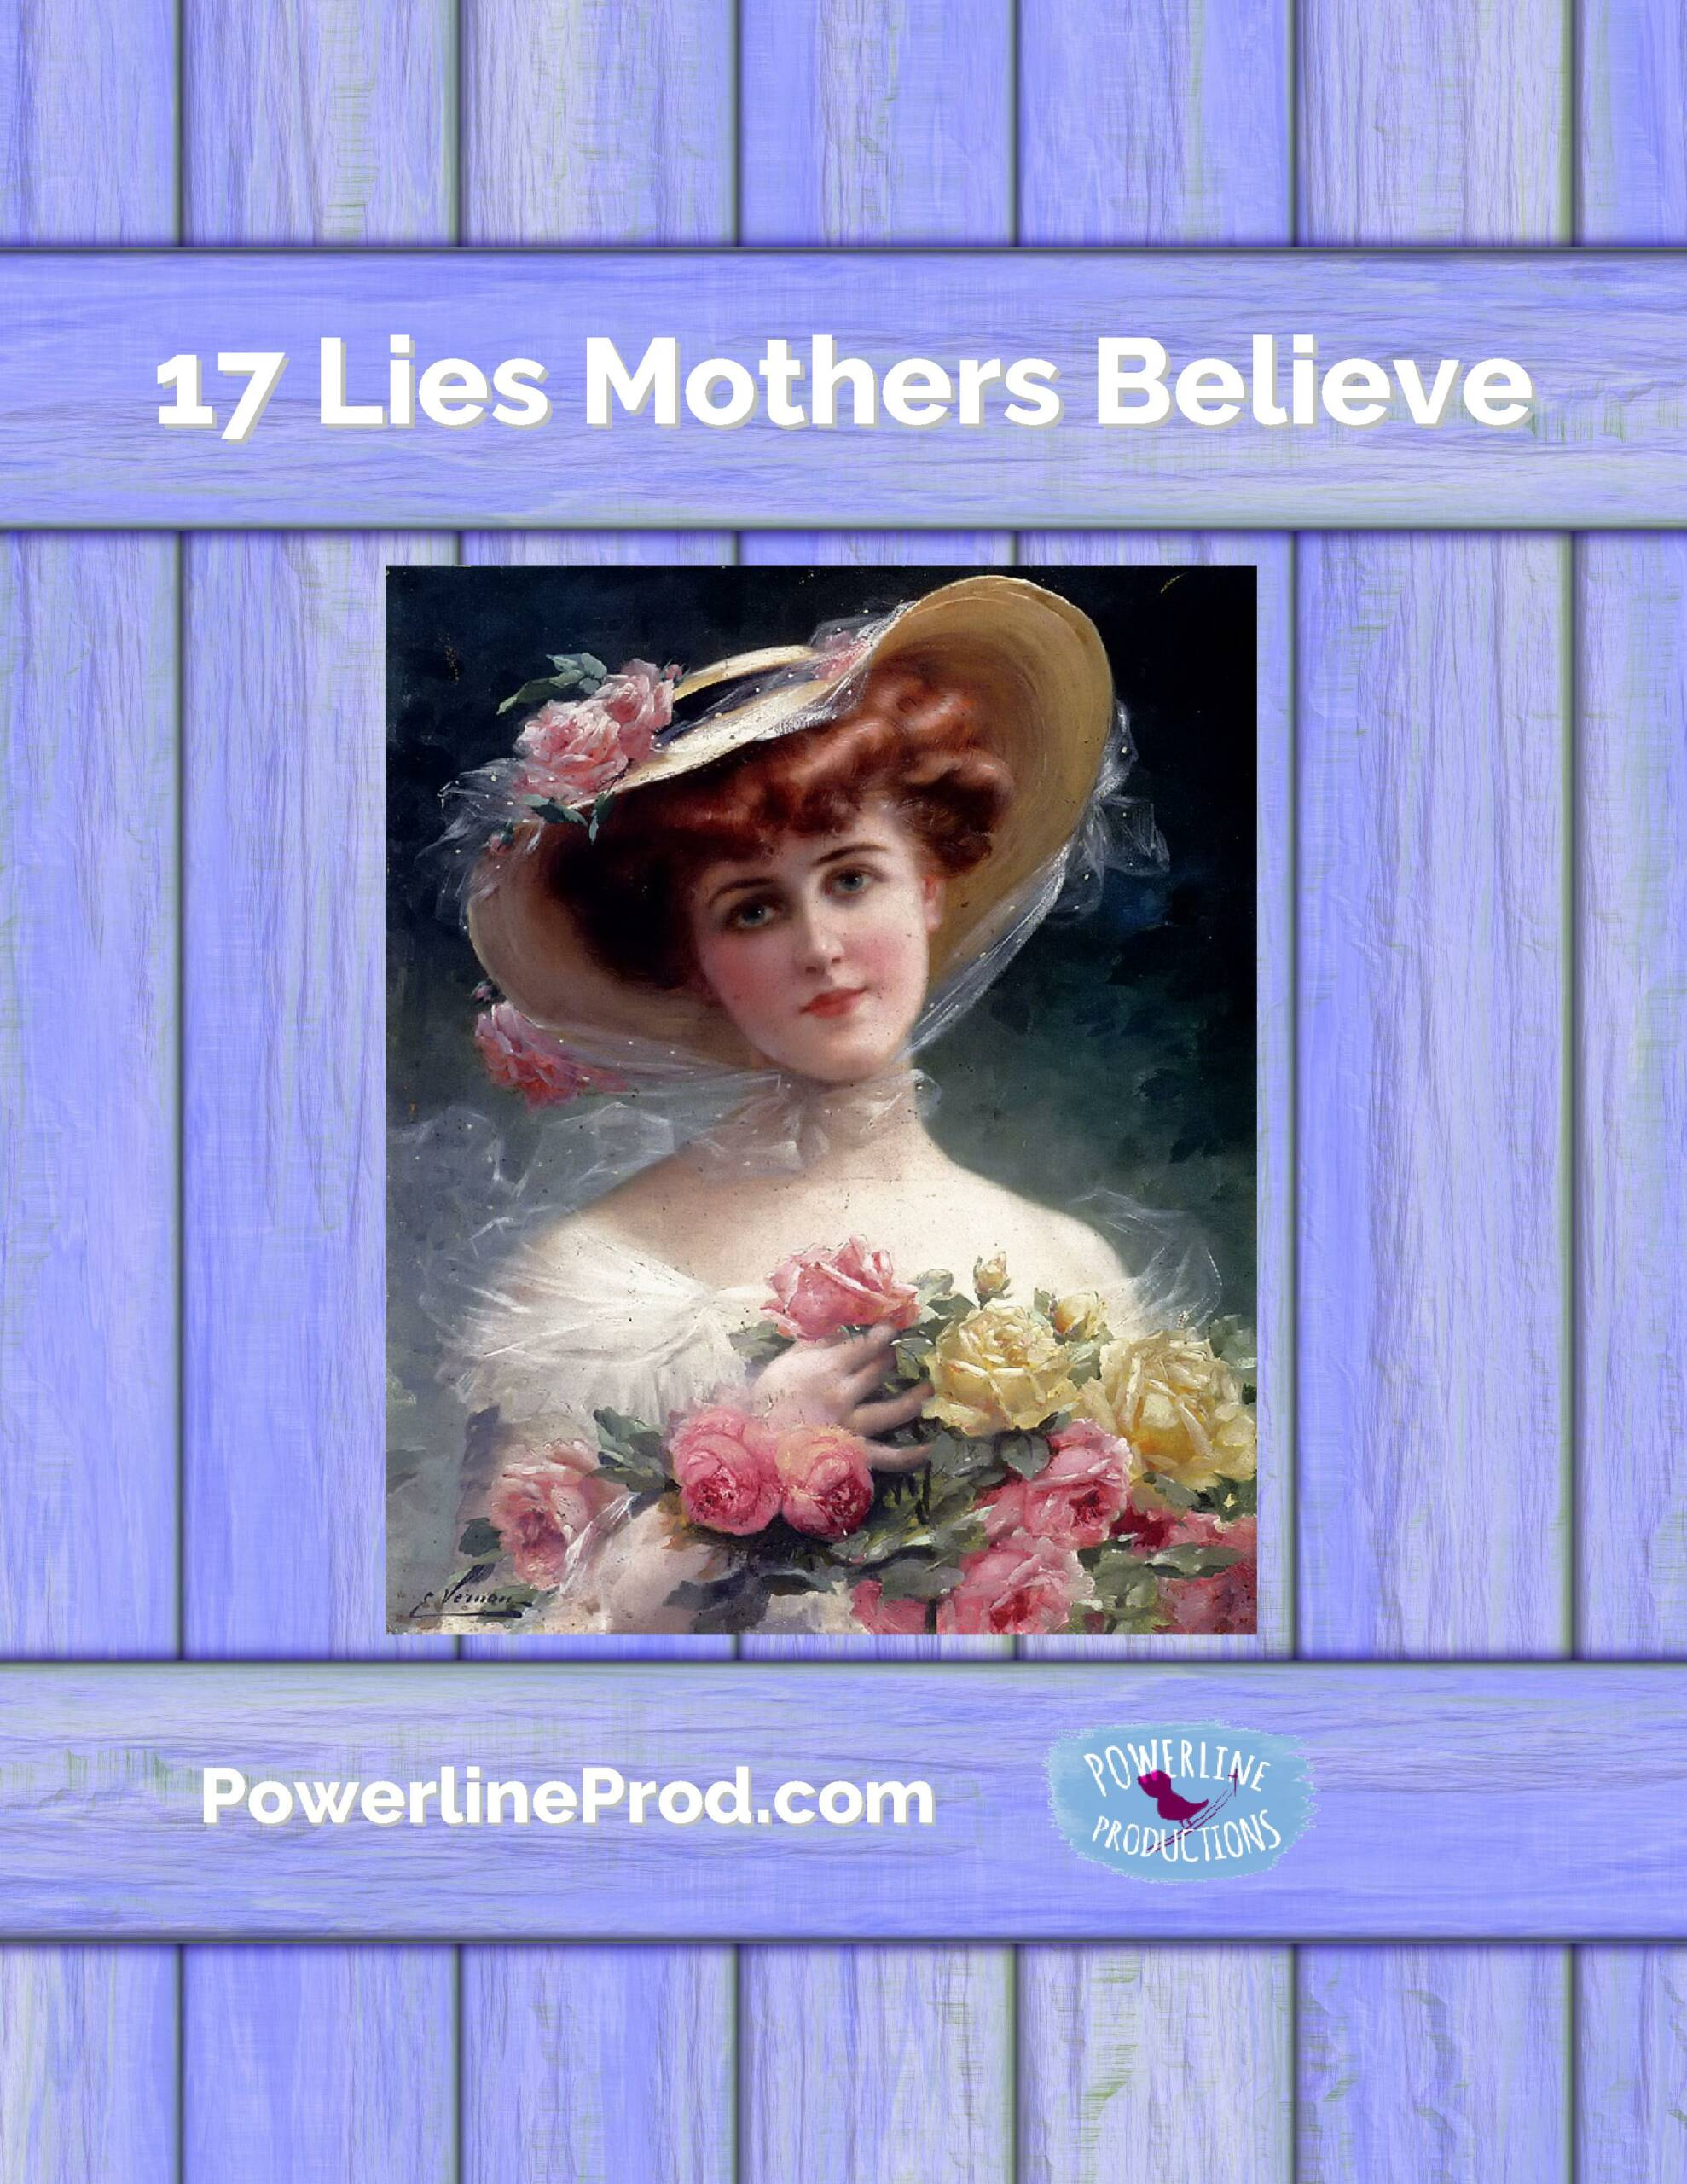 17 Lies Mothers Believe by Meredith Curtis